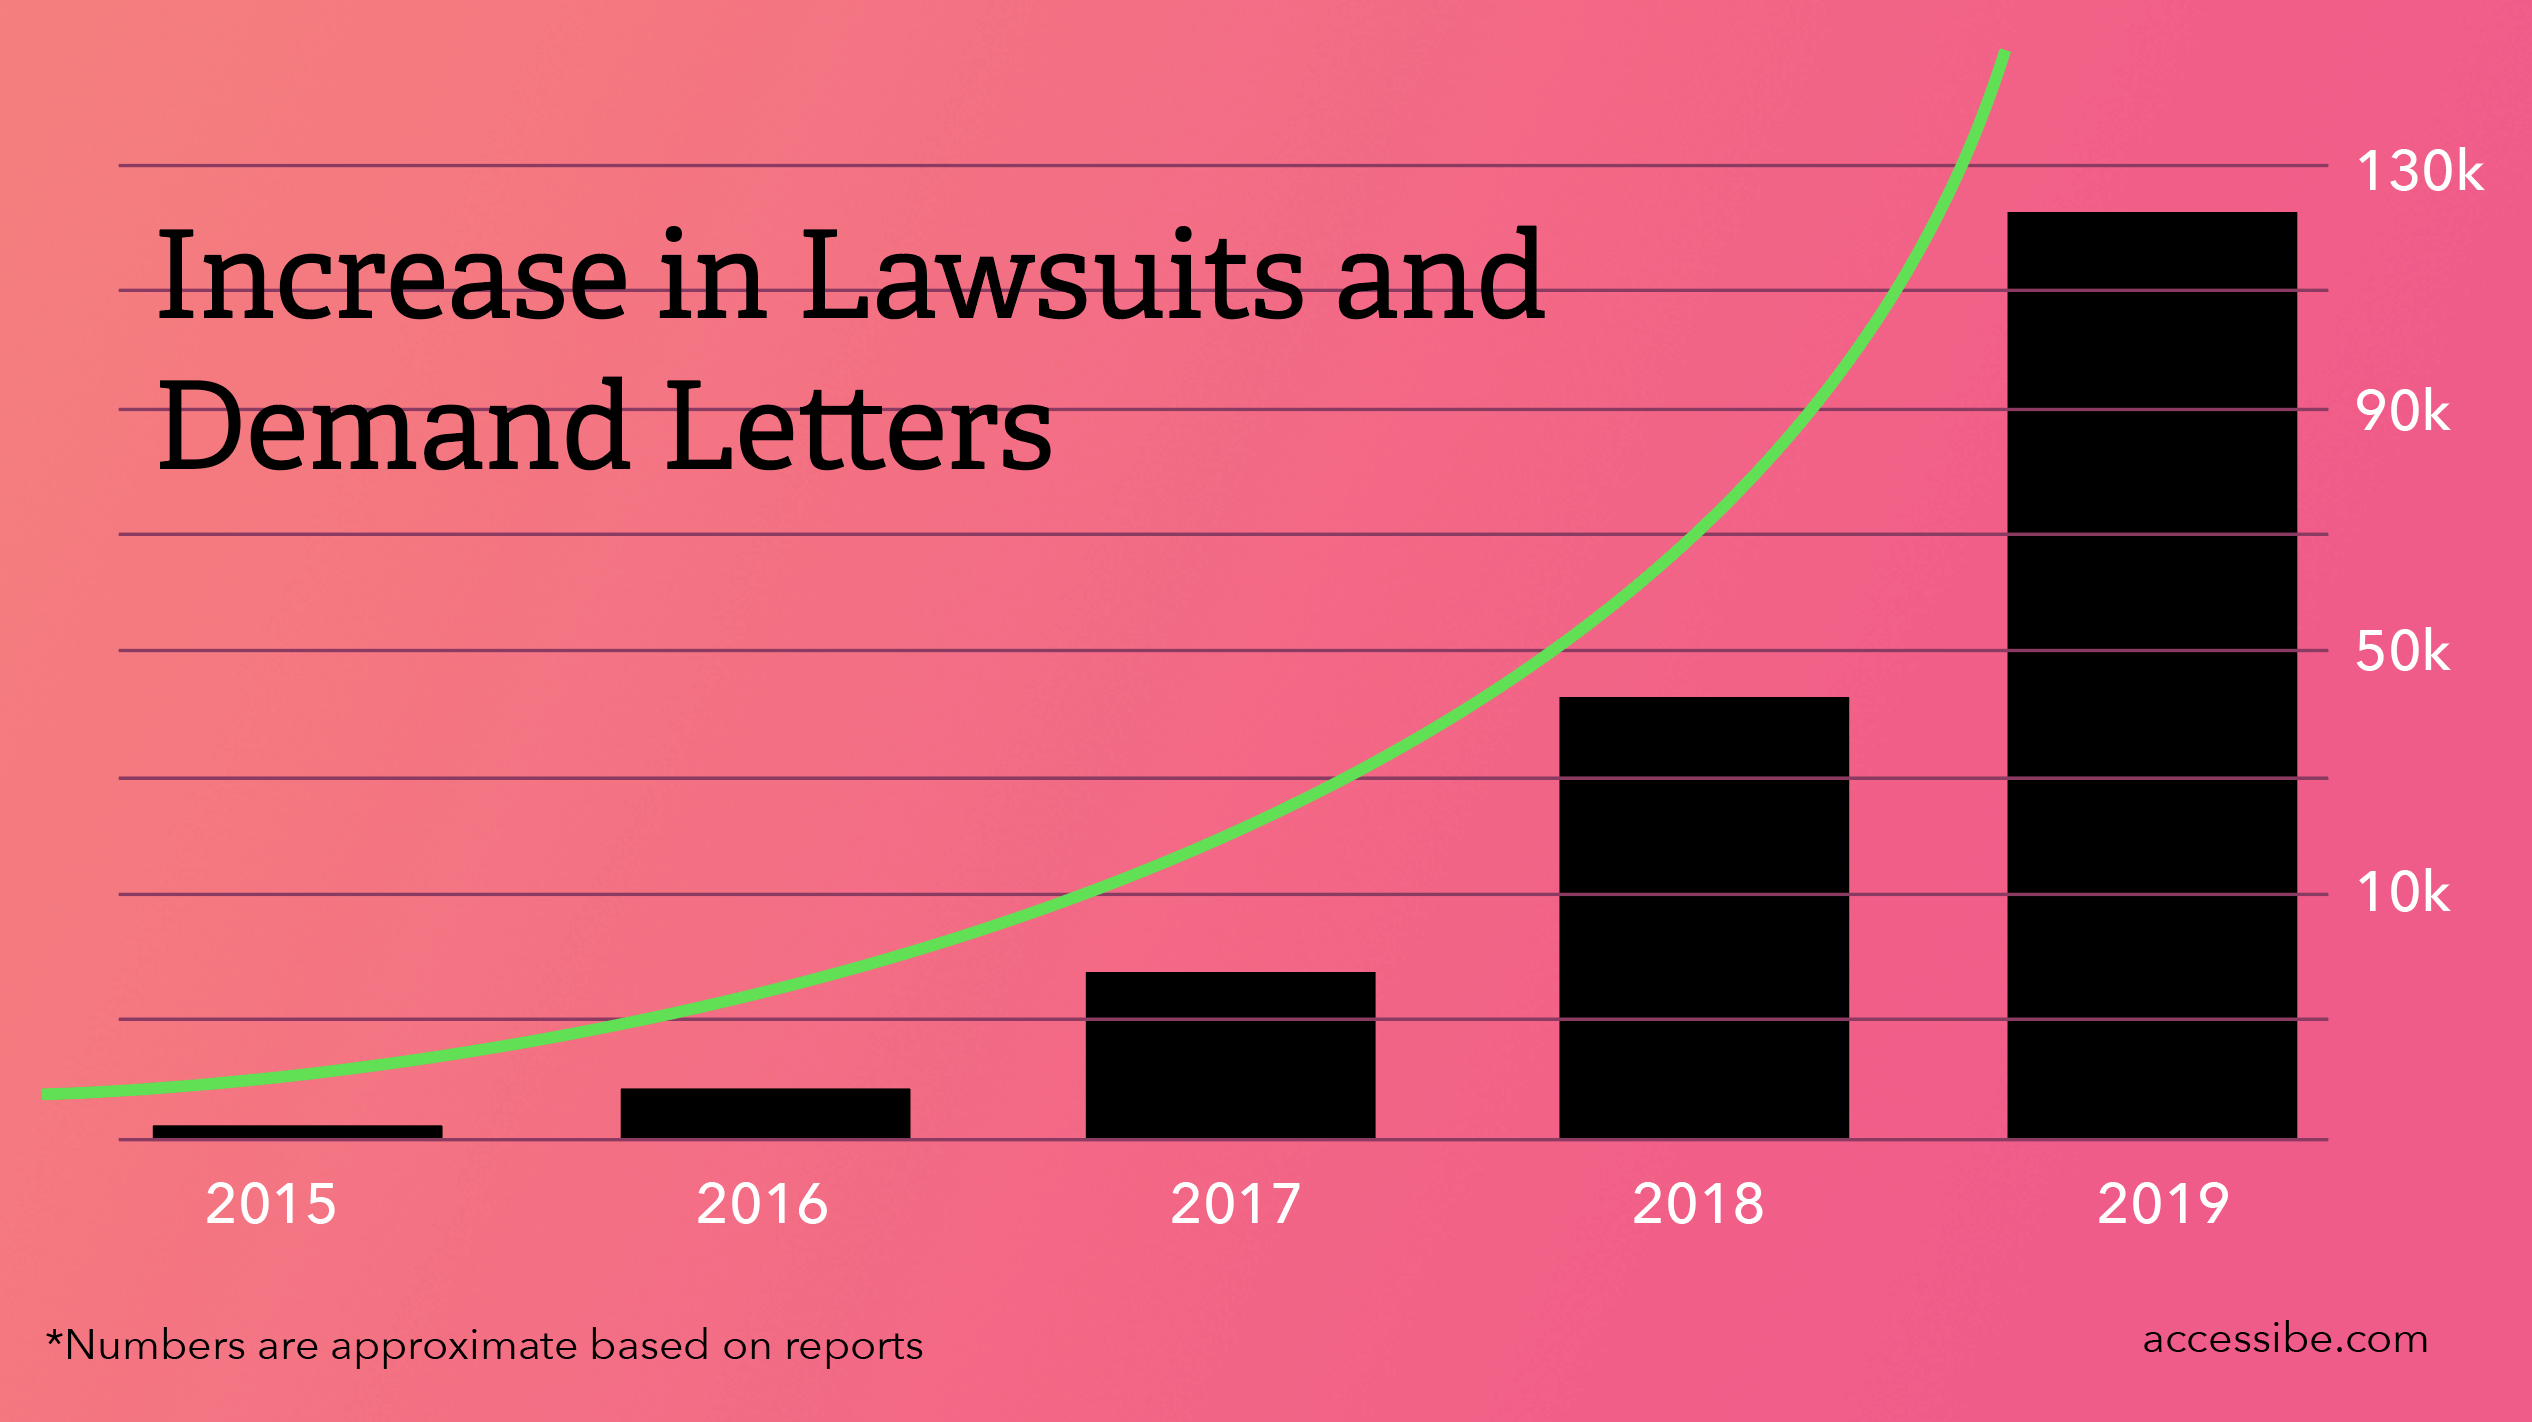 Bar_graph-Increasing_Accessibility_law_suits_and_demand_letters_doubling_and_trippling_year_over_year_from_2015_through_2019